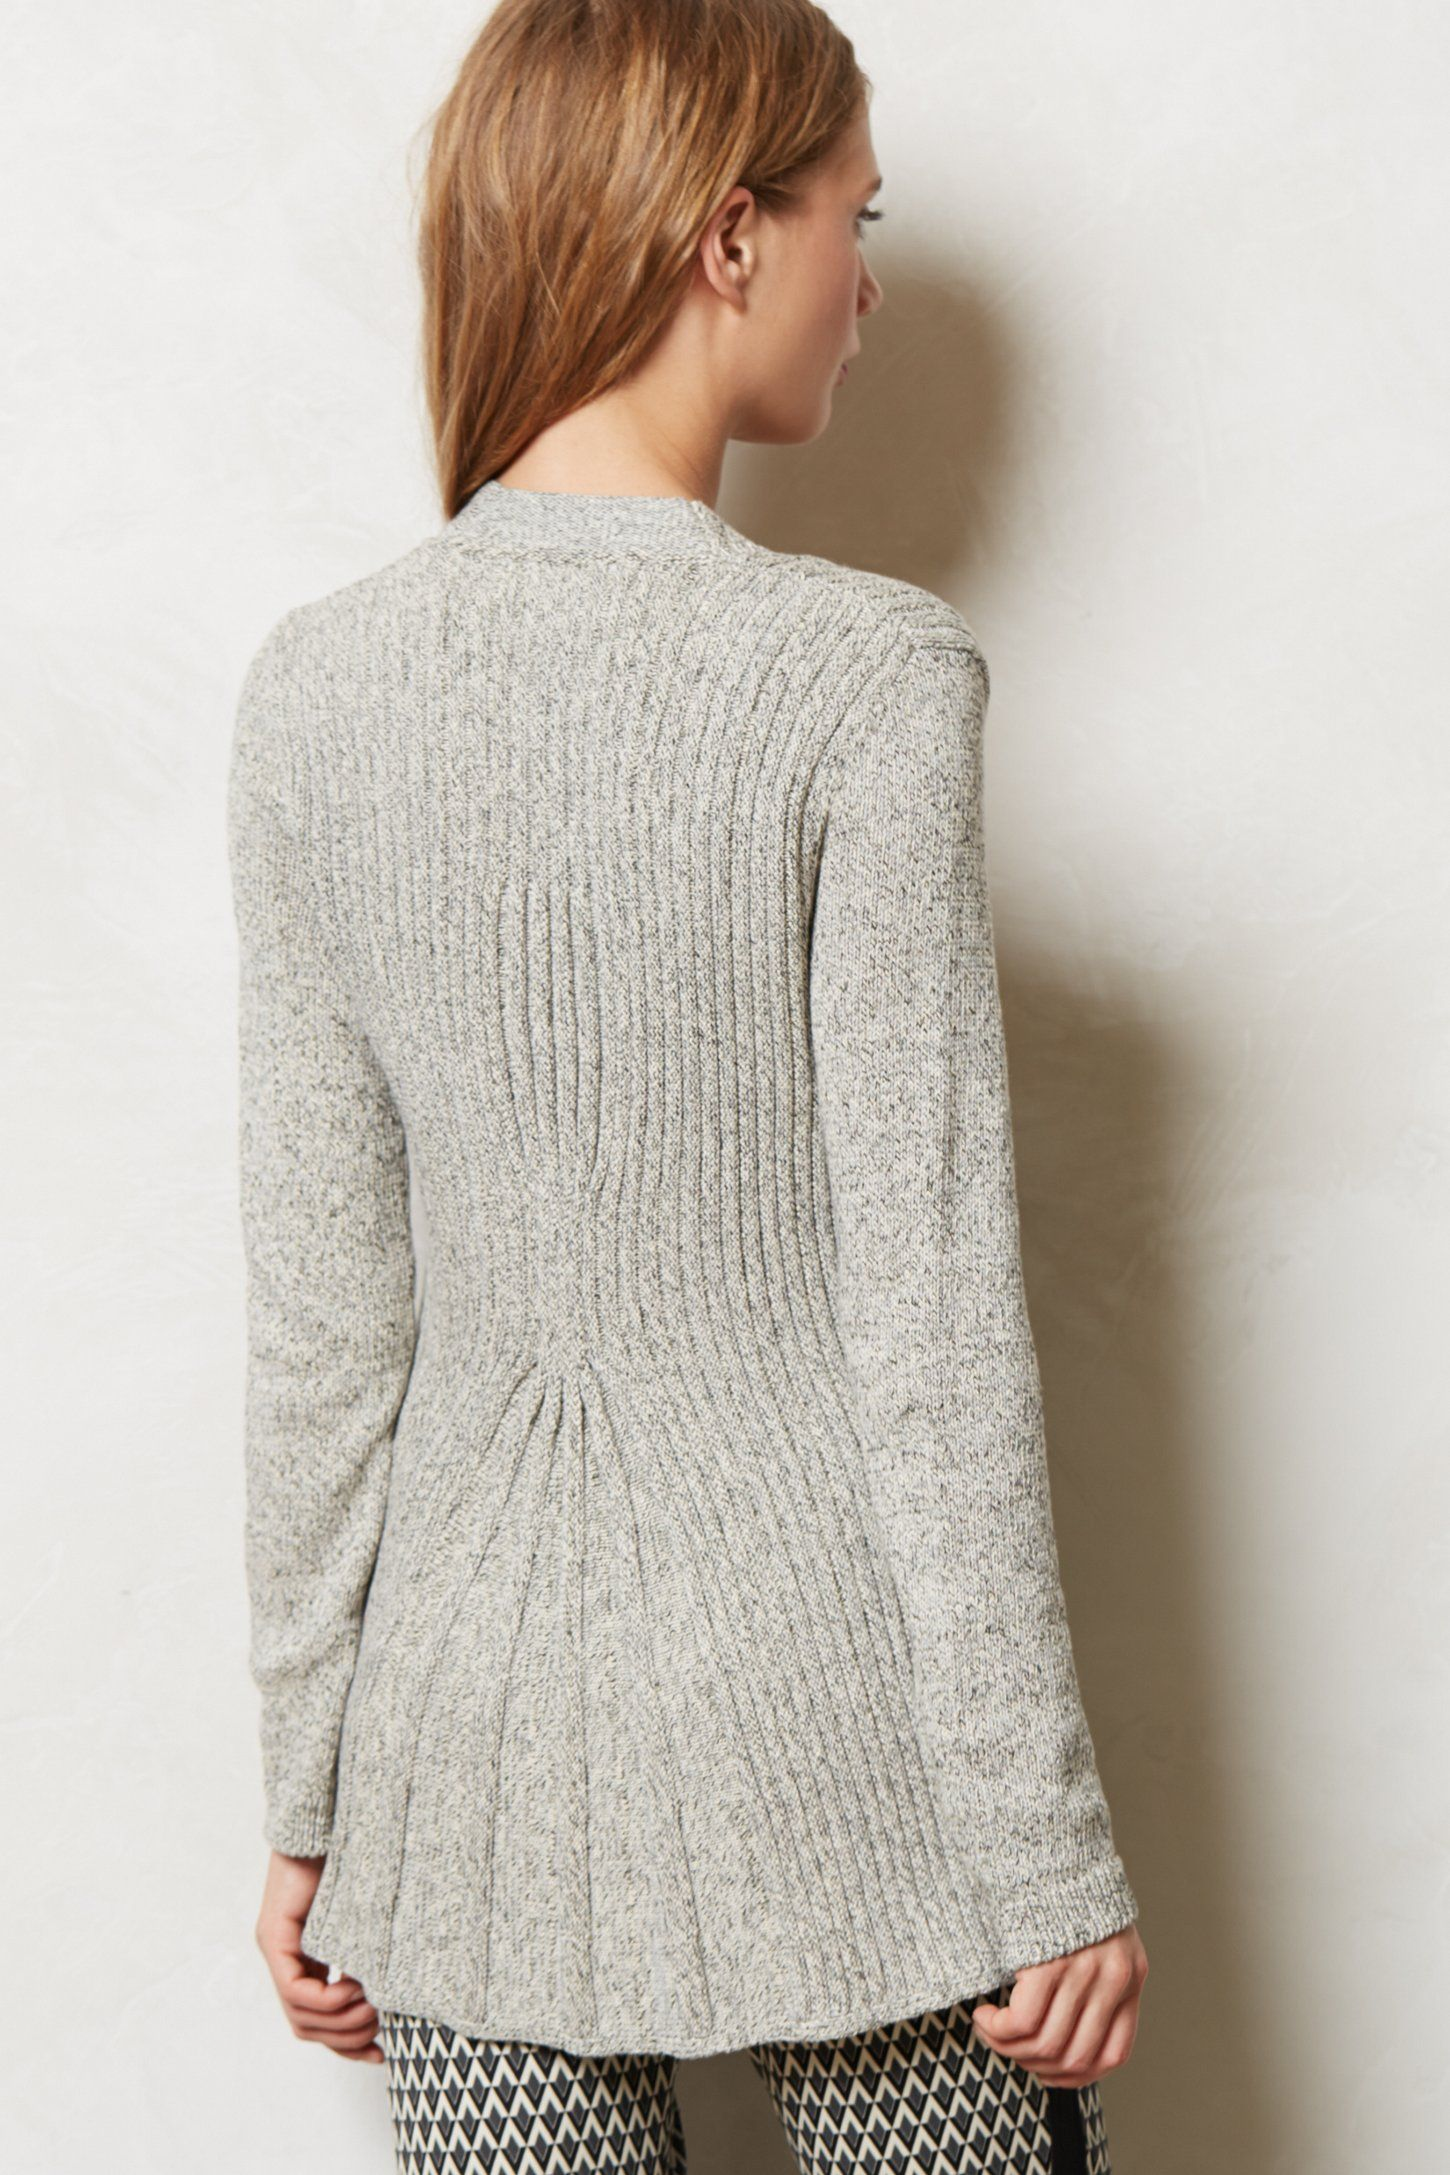 Isabella Cardigan 2 of 2) Love it. | Neuleet | Pinterest | Tejido ...